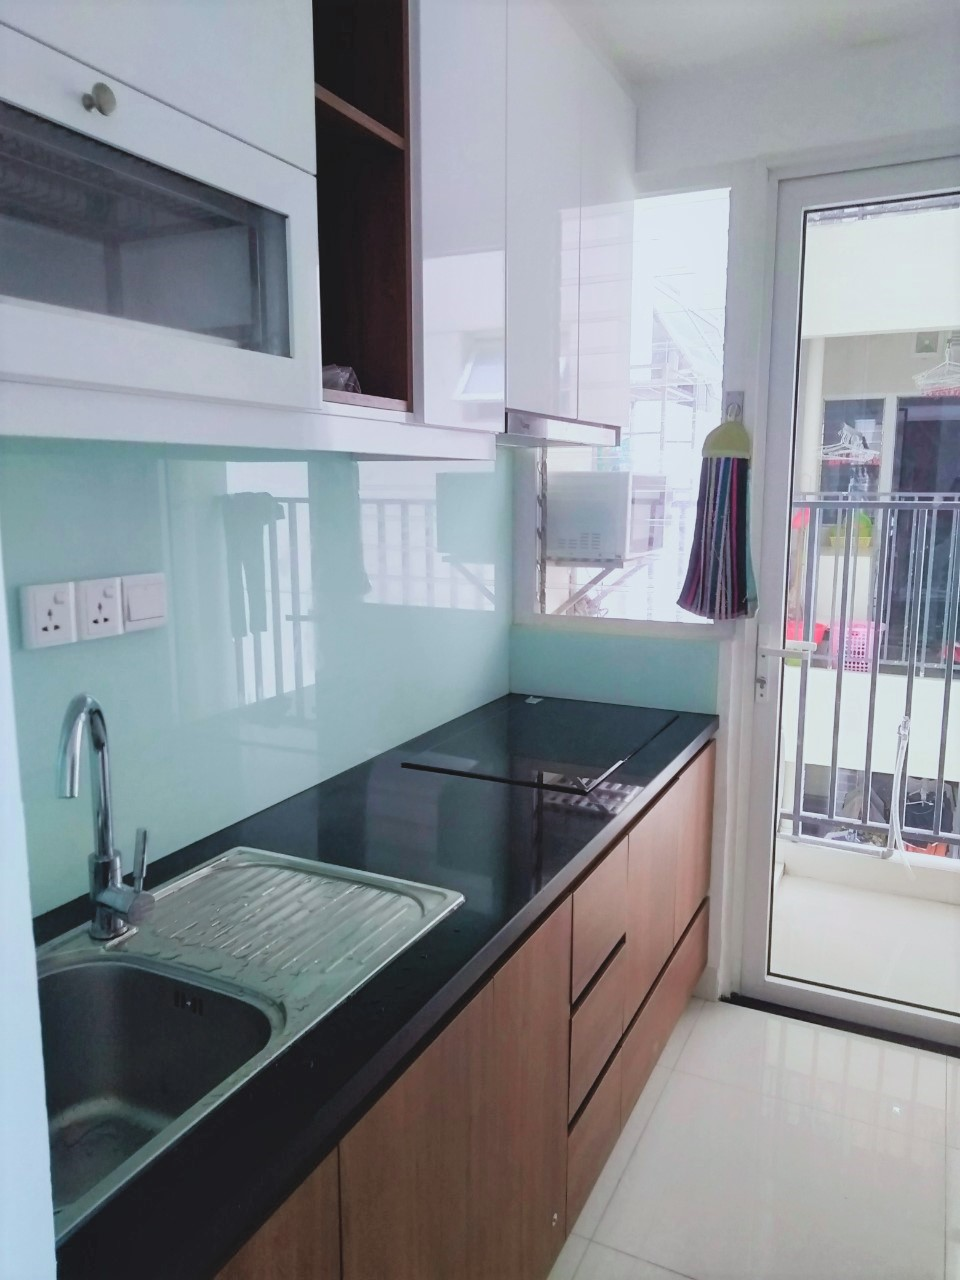 Apartment for rent D221171 (7)